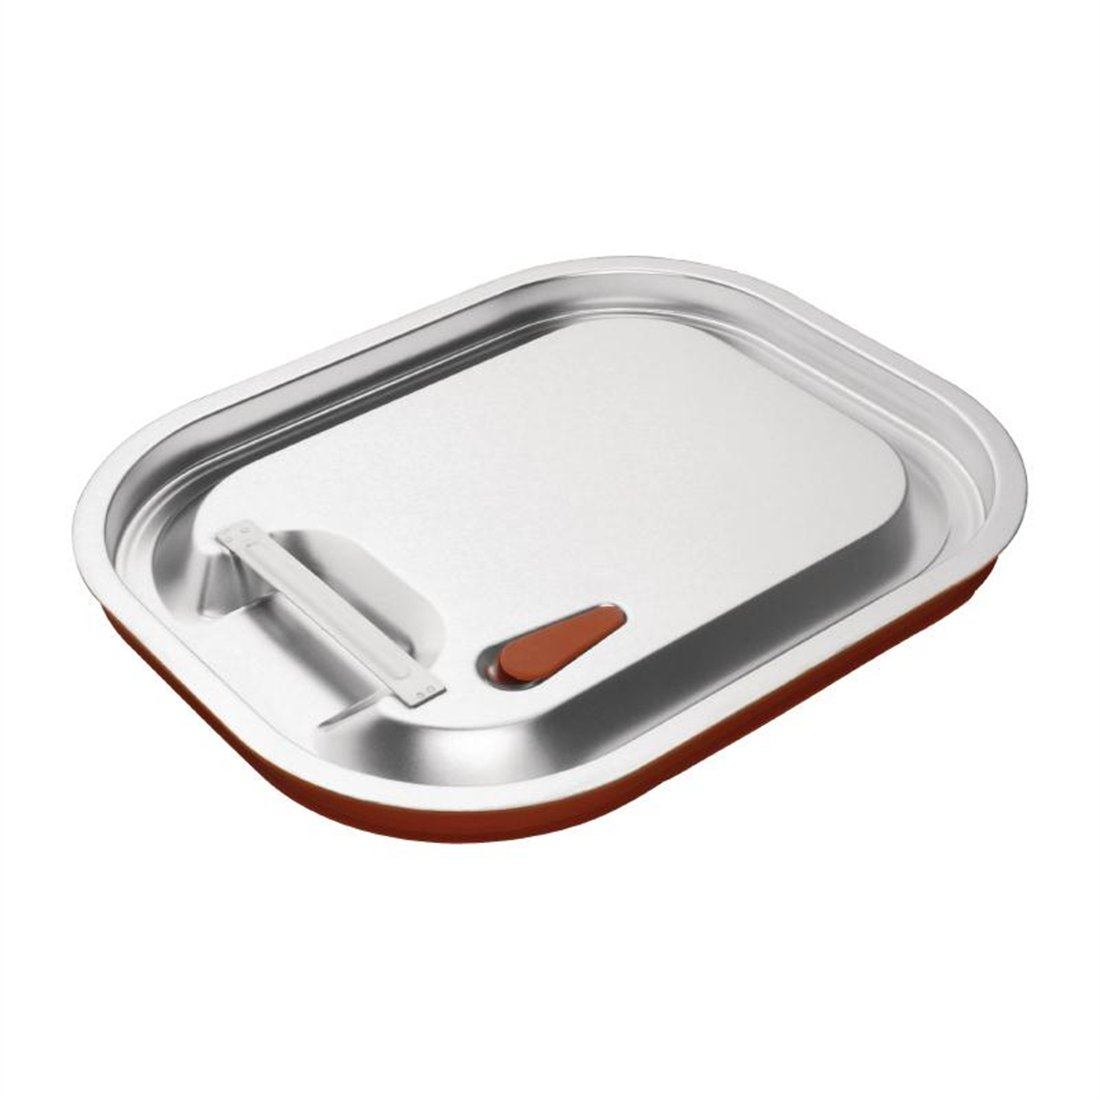 Vogue CP269 Stainless Steel and Silicone Sealable GN Lid 1//2